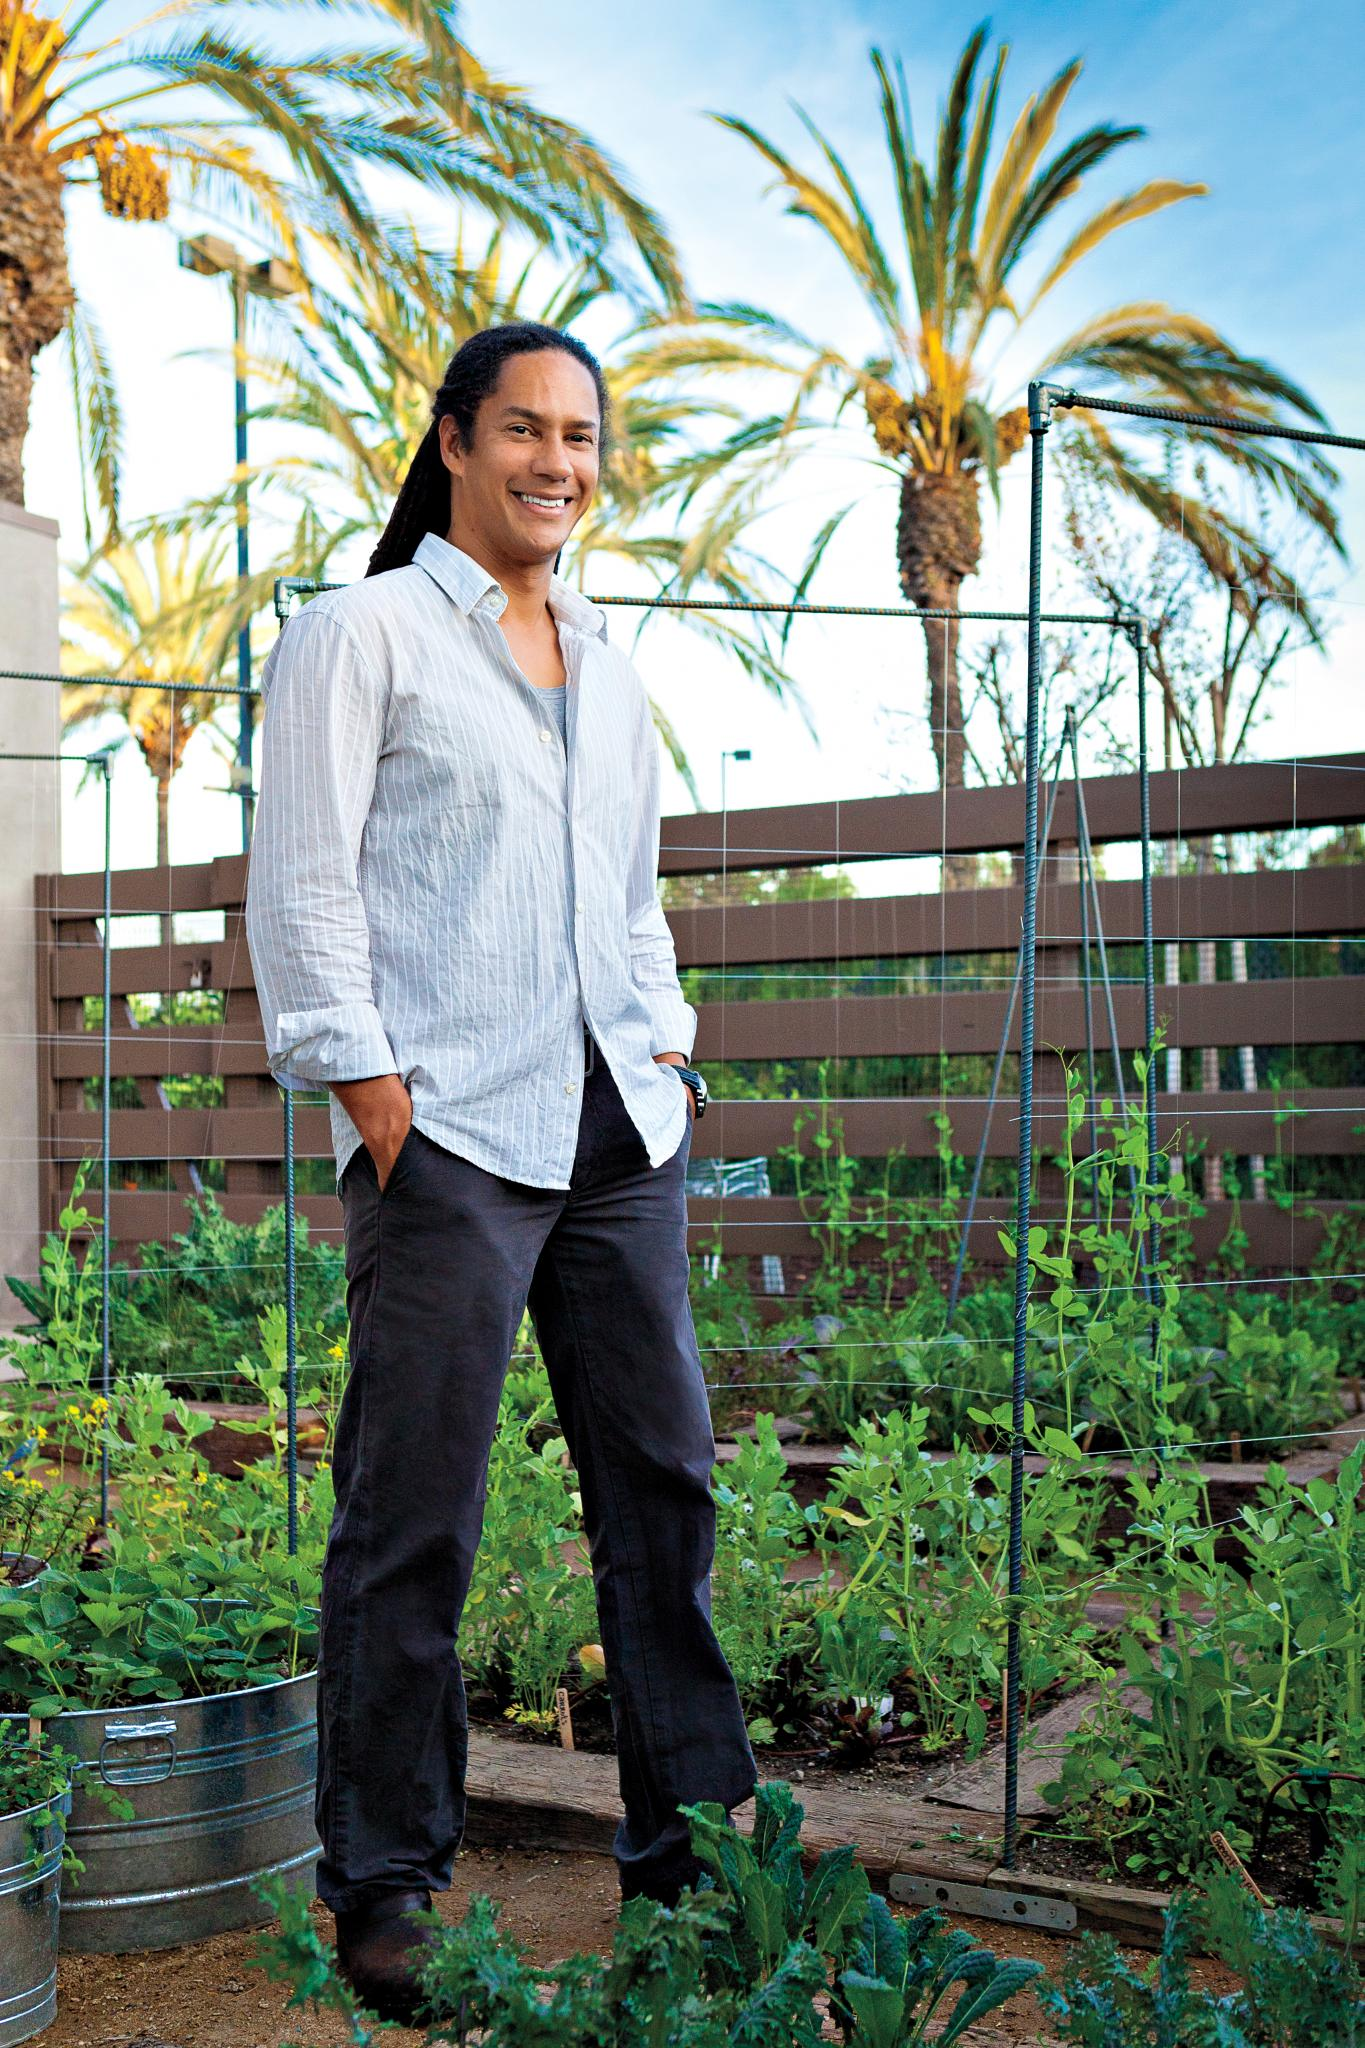 Fresh Coast Cuisine: Bringing Farm-to-Table Dining Back to the Black Middle Class